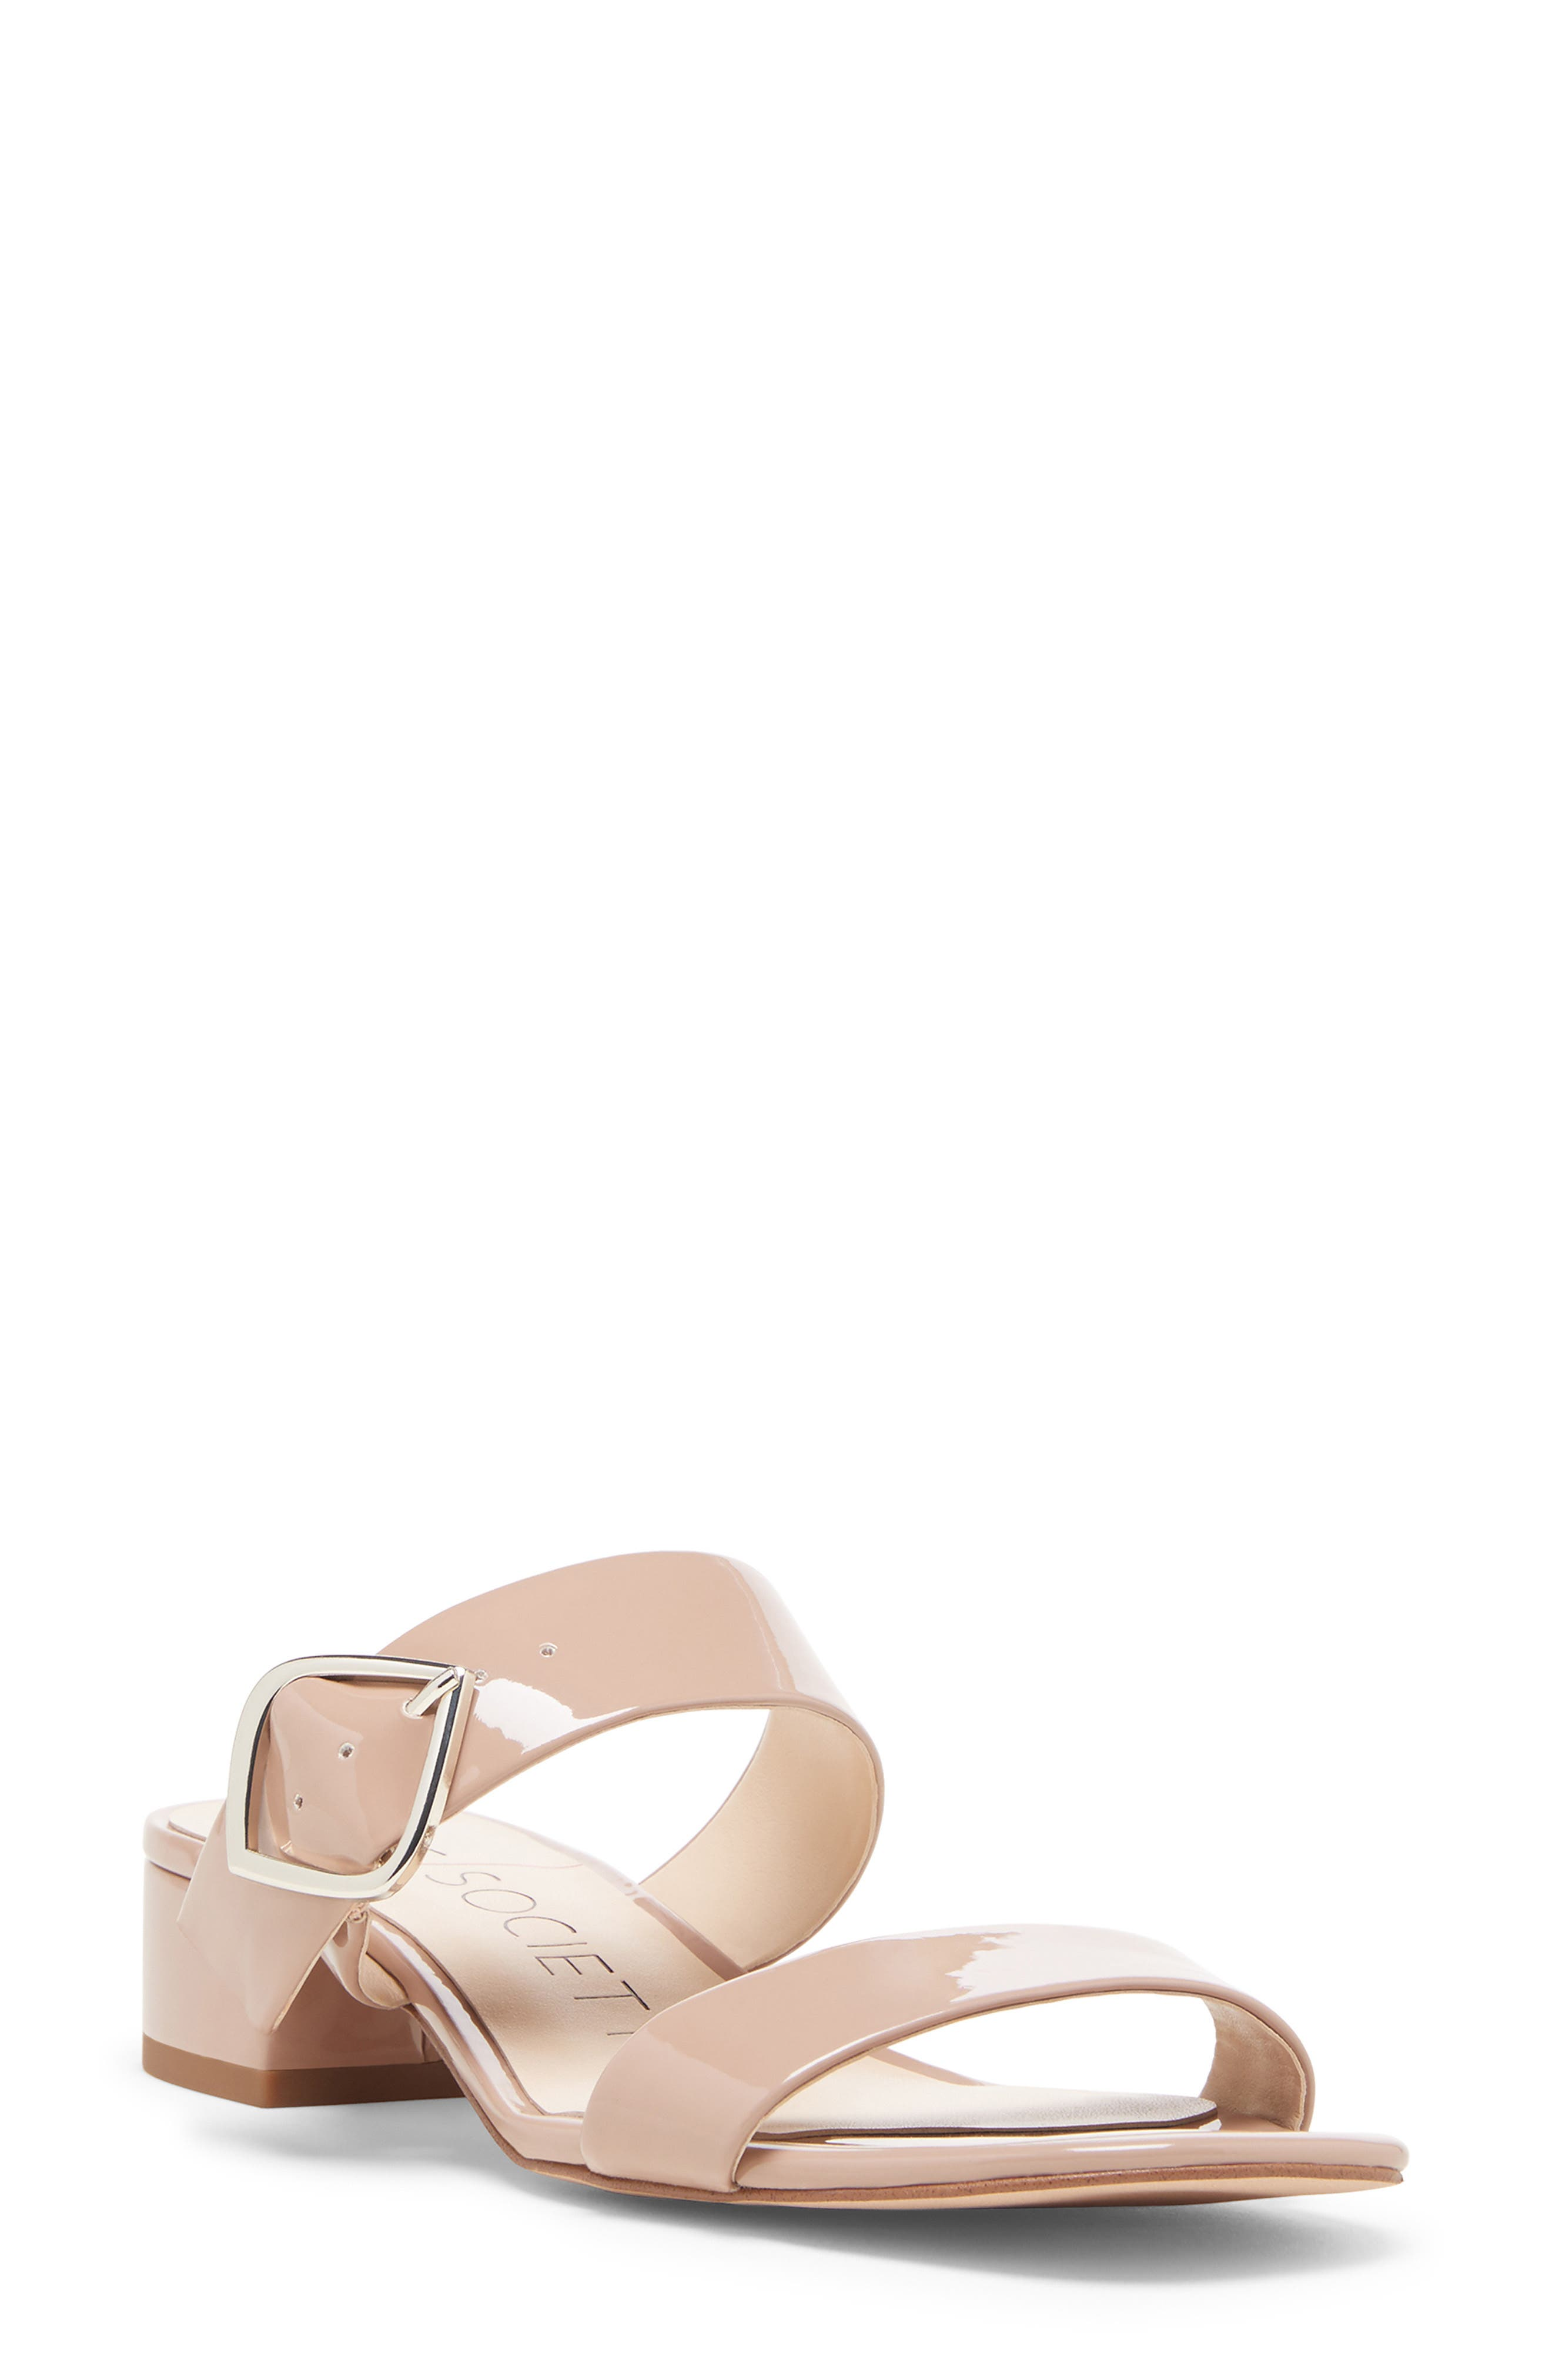 Emberlise Slide Sandal, Main, color, NUDE FAUX PATENT LEATHER